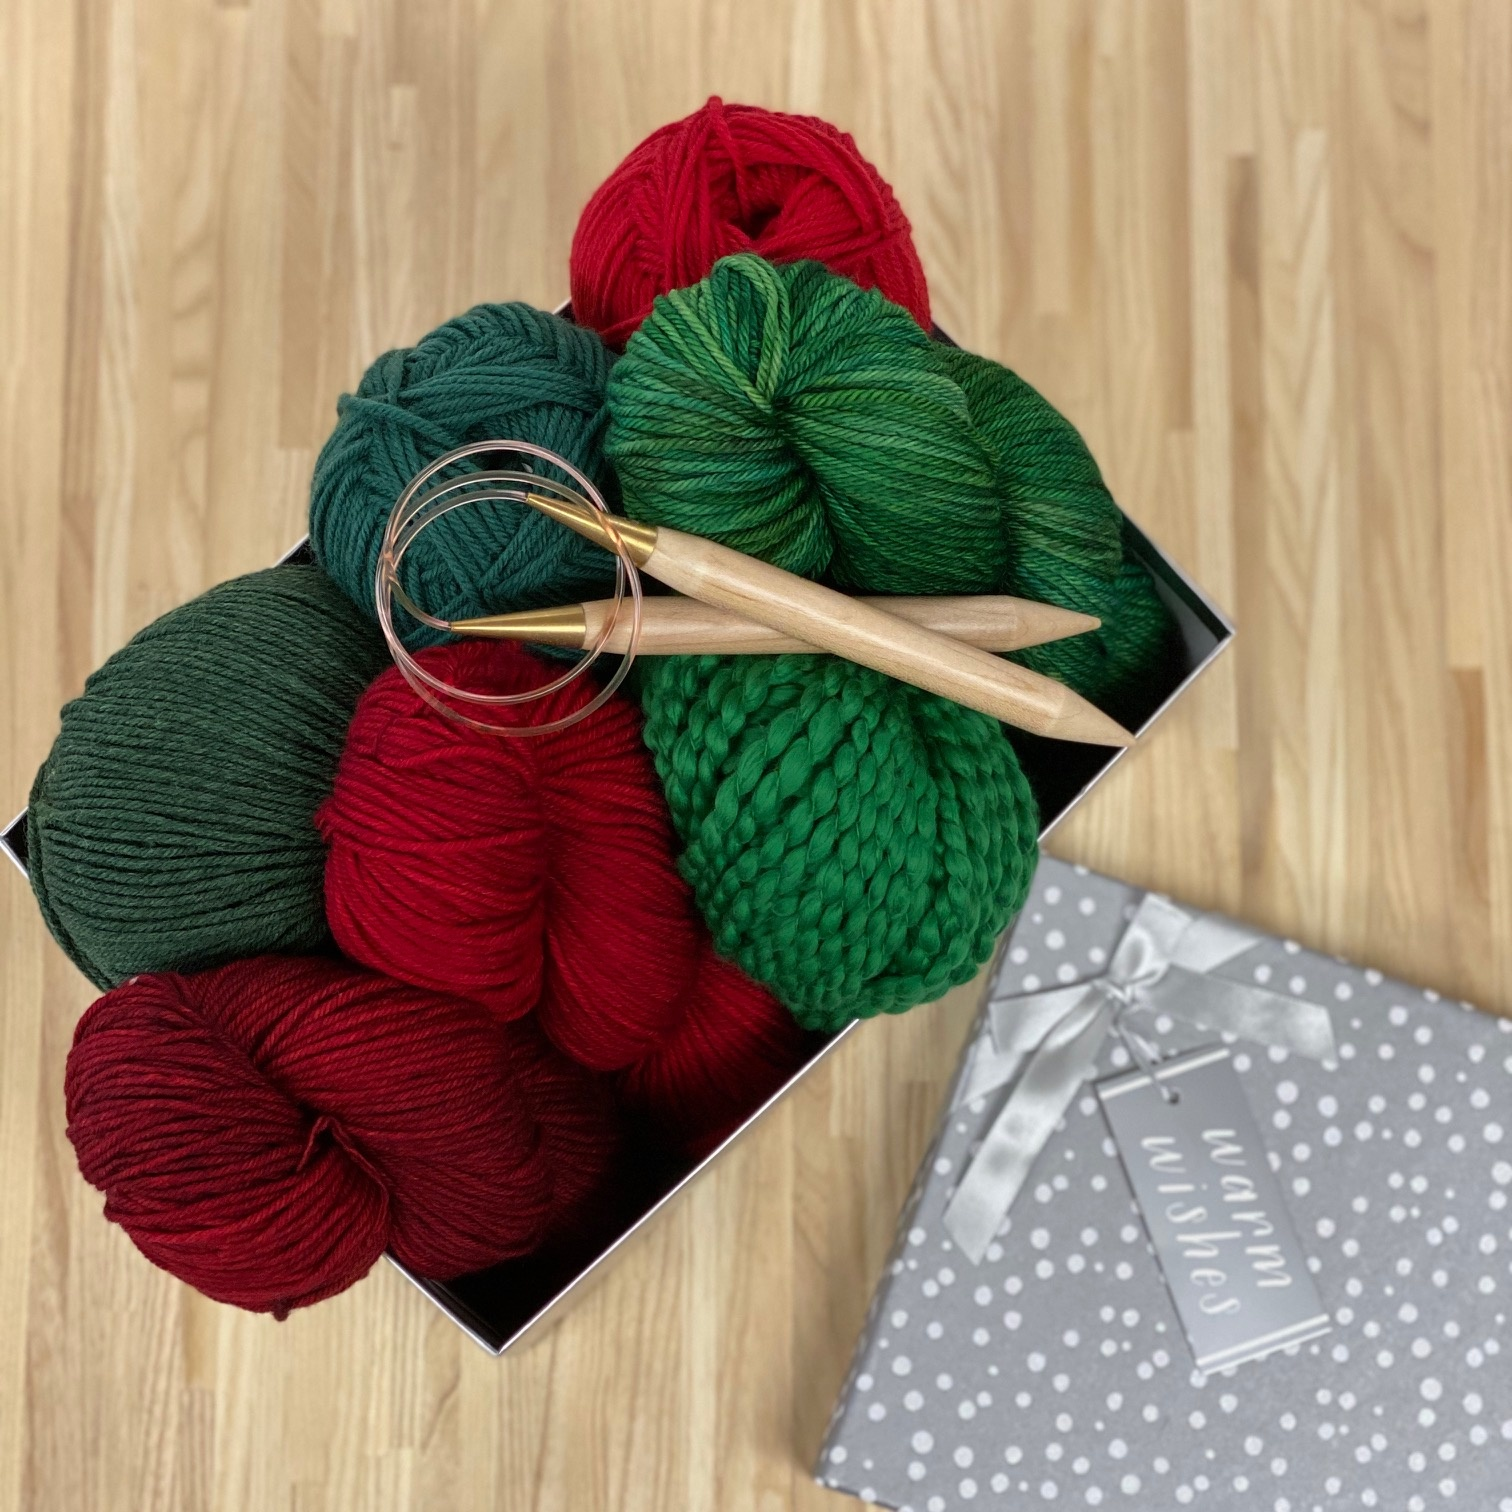 Blog - Gifts for Knitters - The Curious